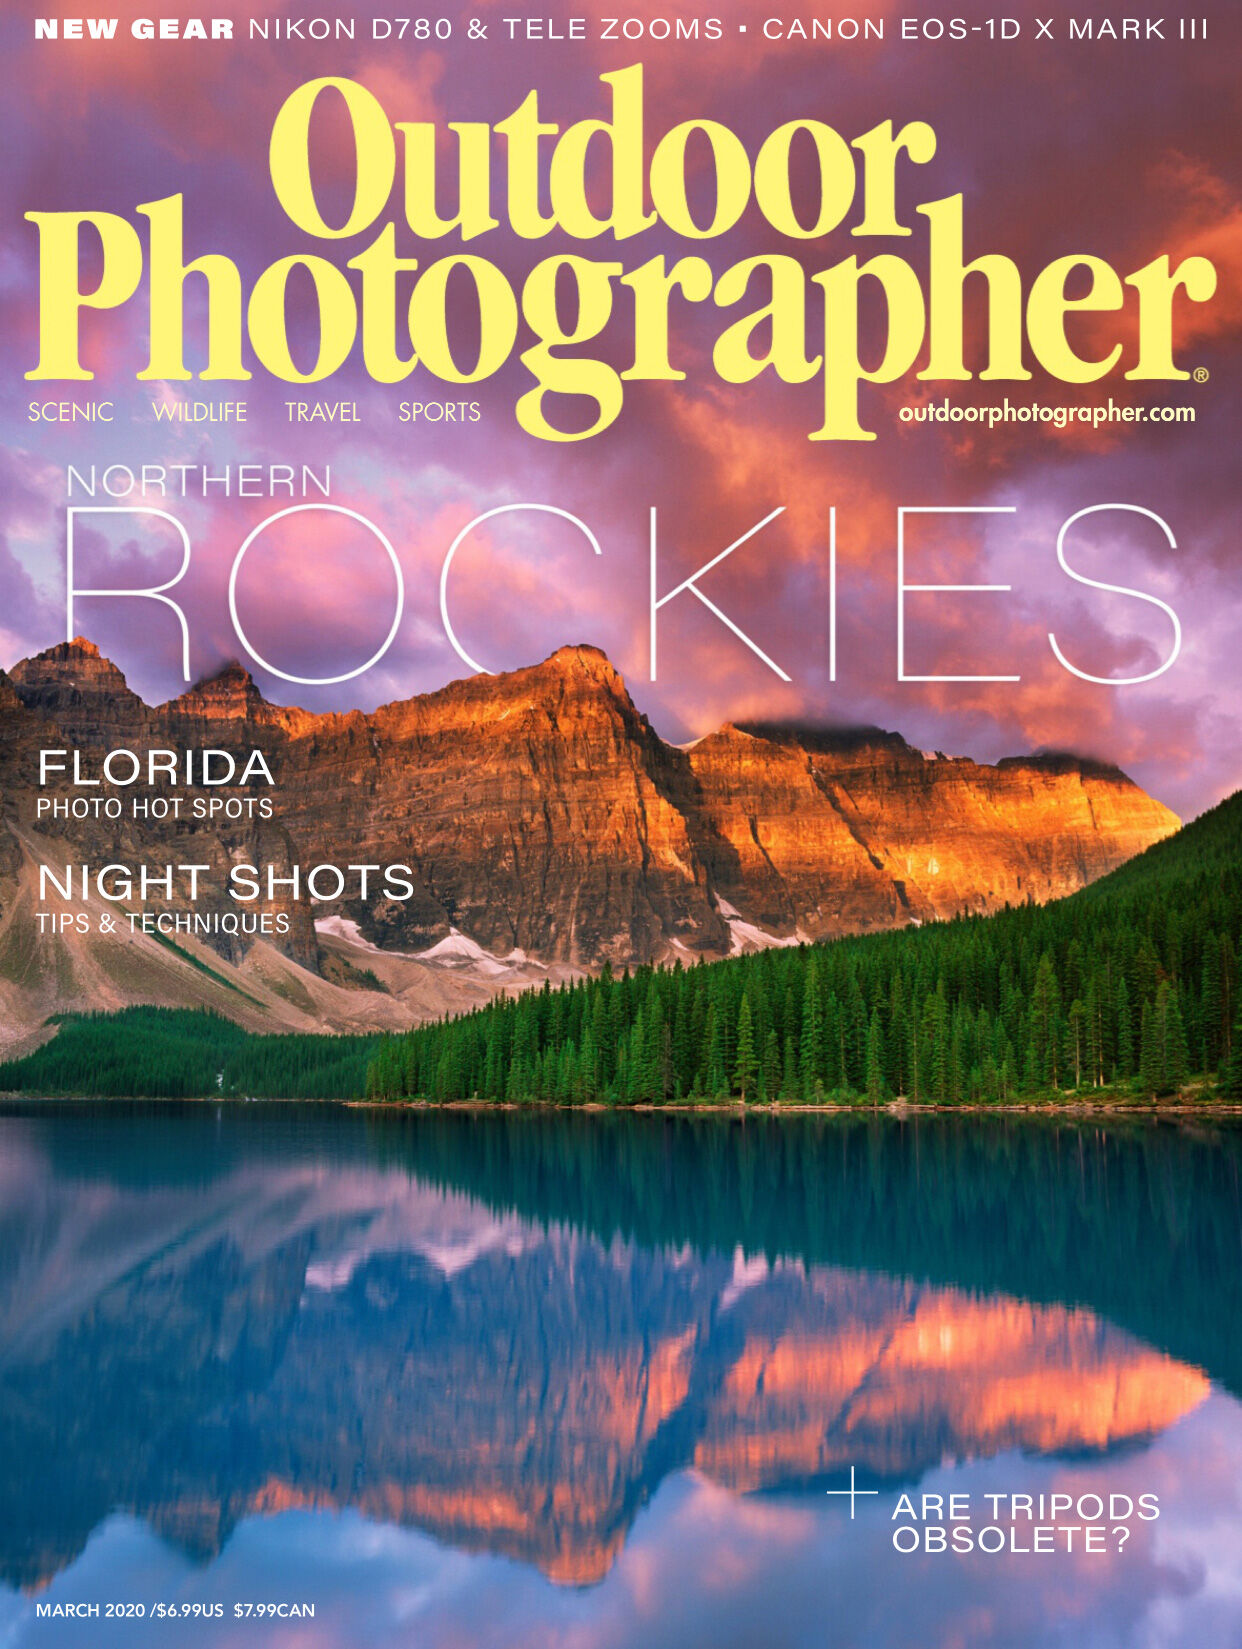 Outdoor Photographer Magazine, March 2020, Forces of Nature, Mud Cracks, RV Road Trip, Death Valley National Park, photo